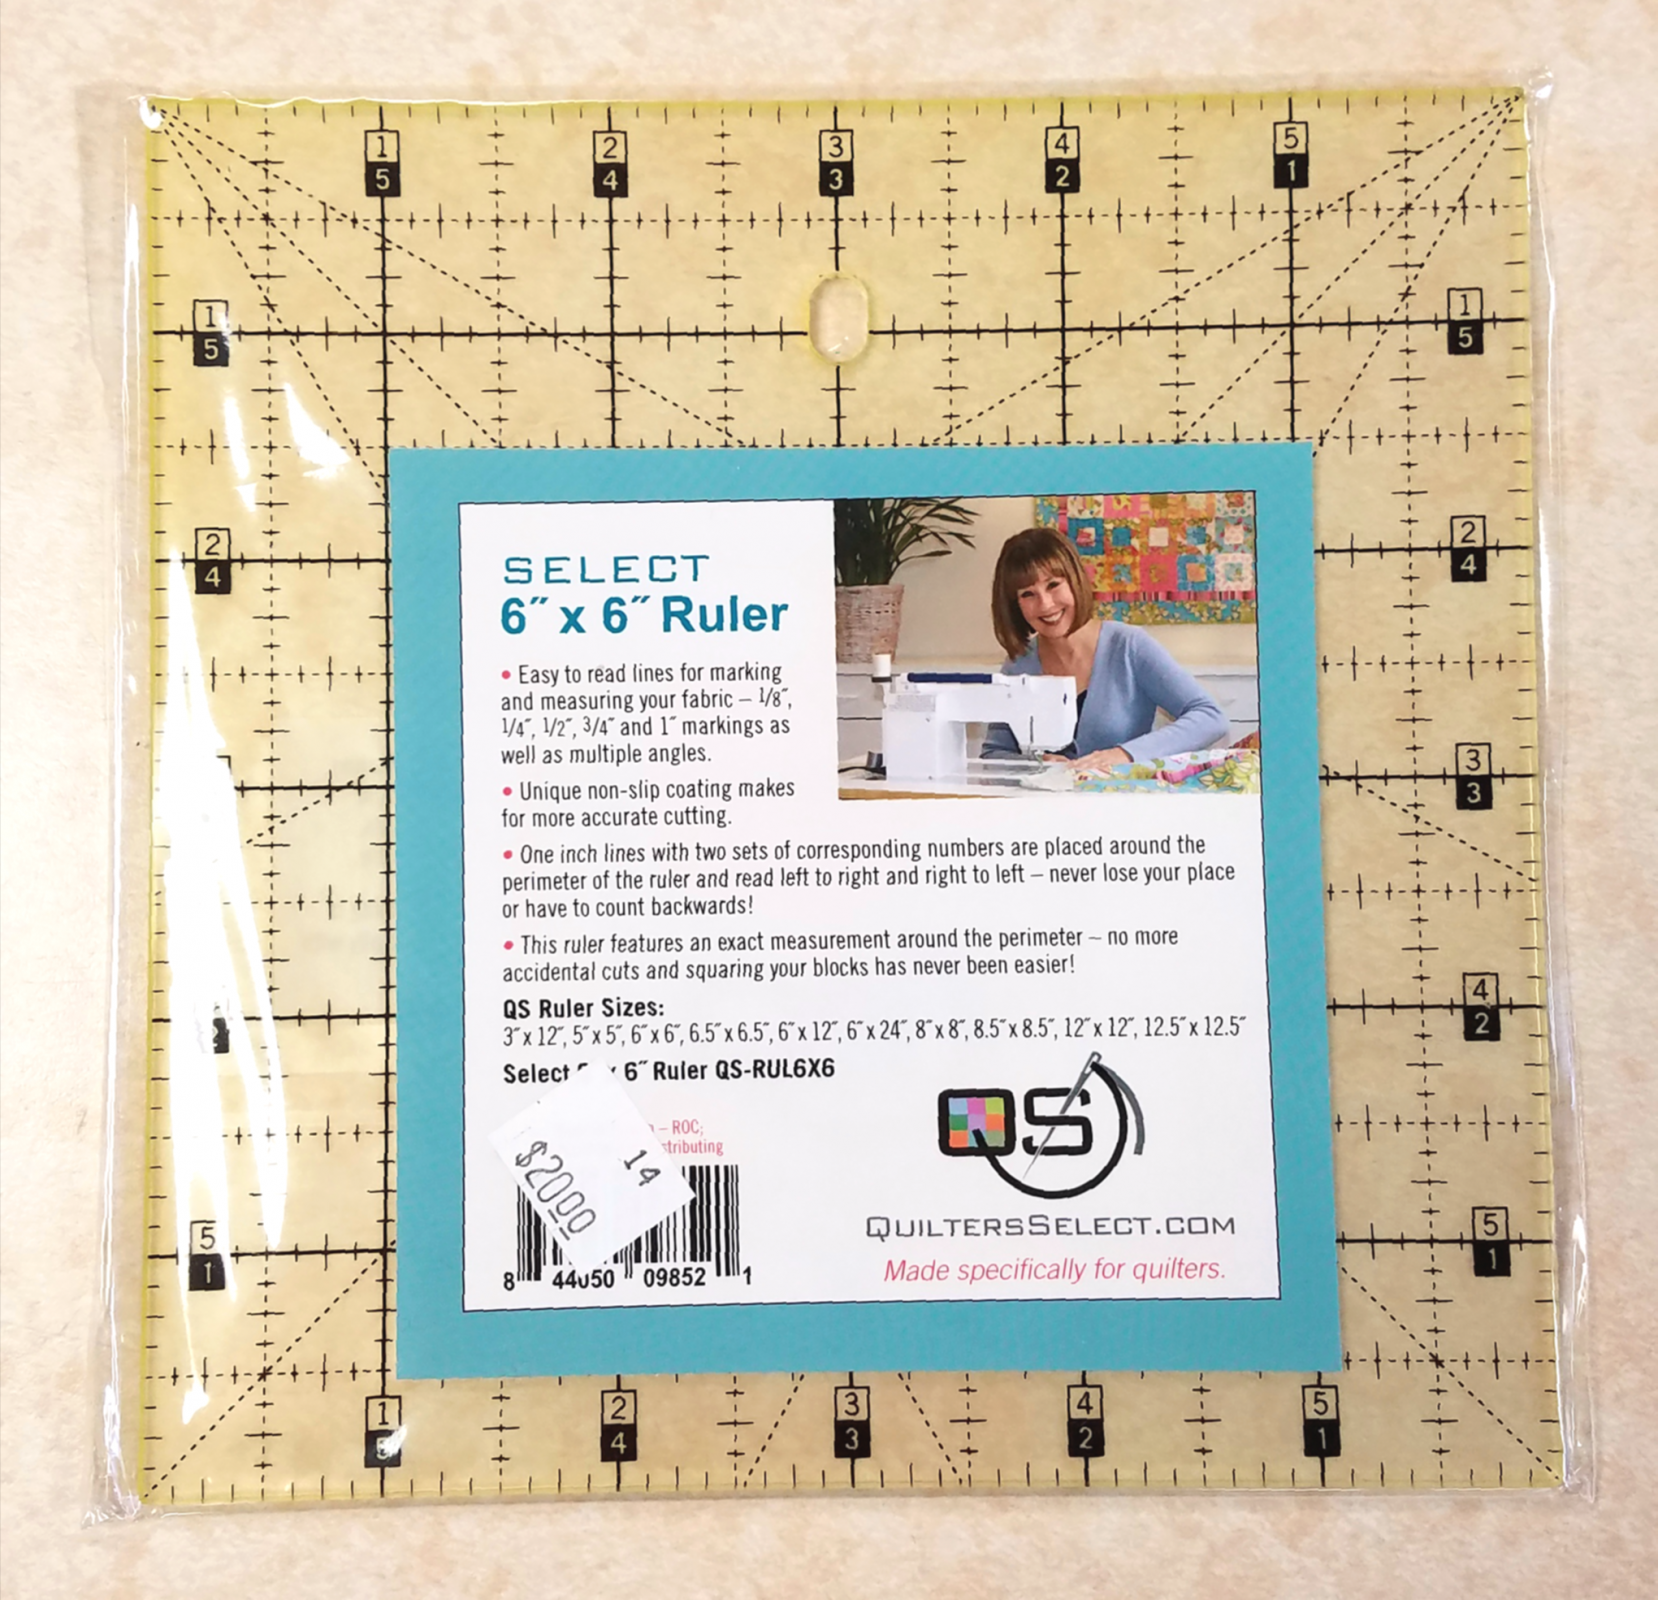 Quilter's Select Ruler 6 x 6